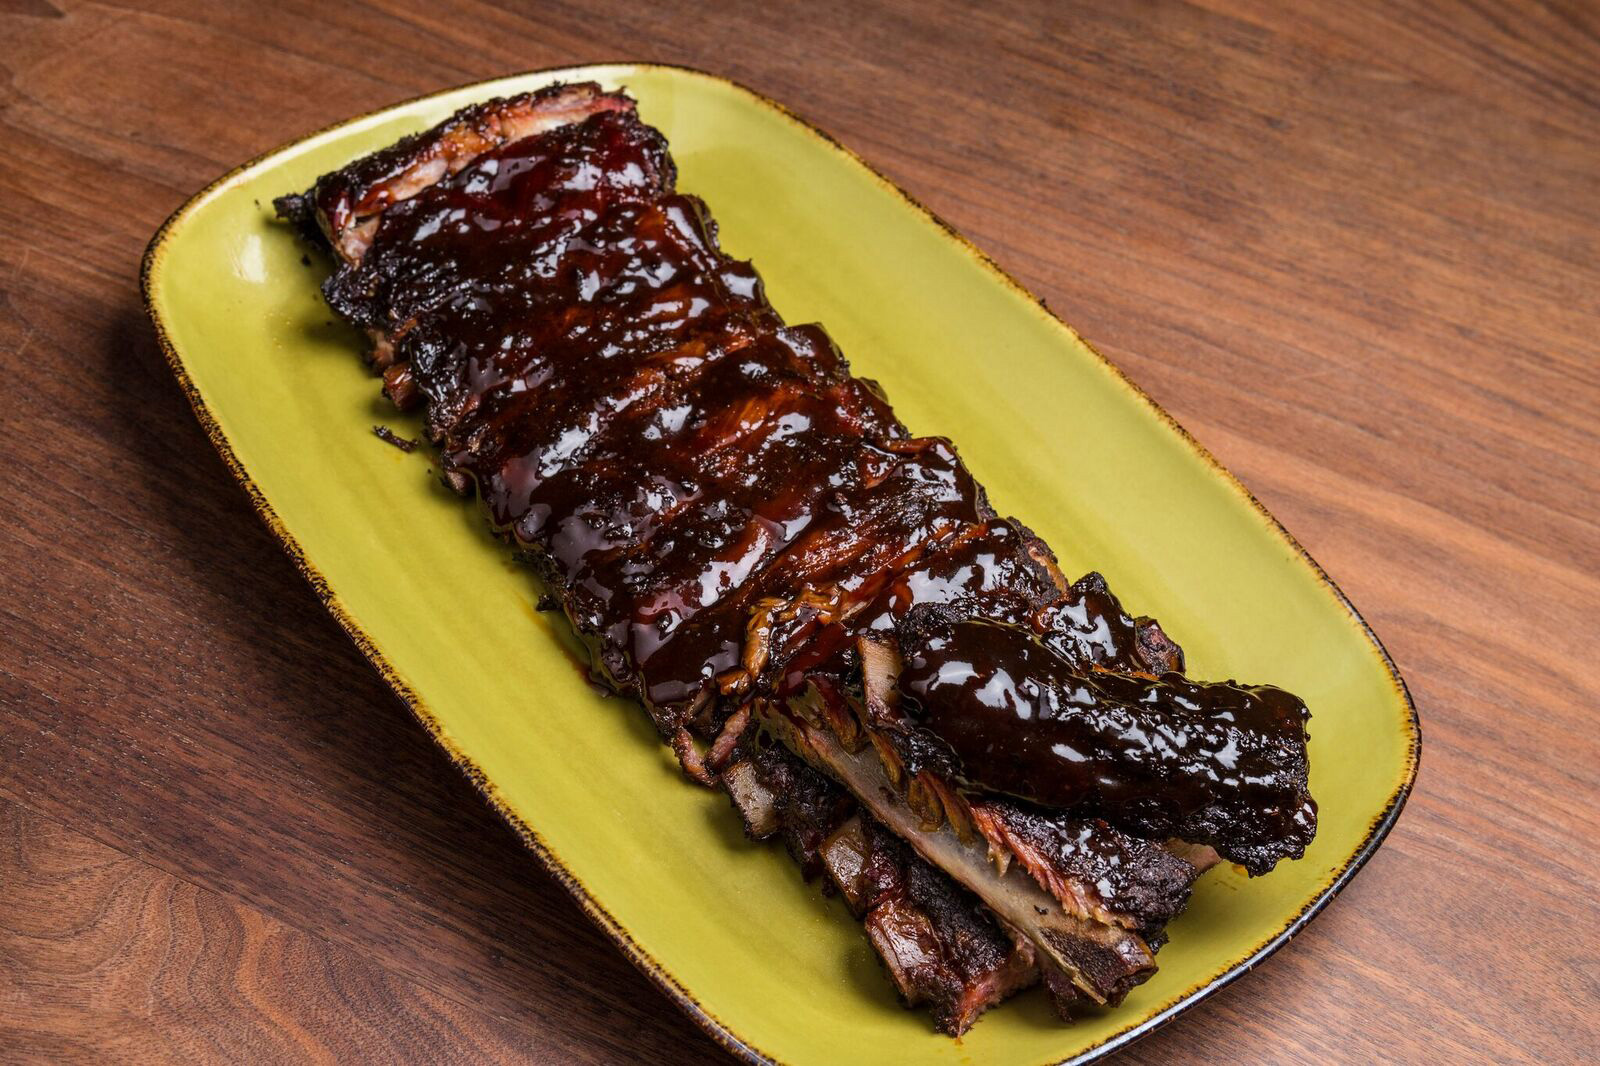 One Market's Back Porch BBQ includes St. Louis-style ribs with housemade BBQ sauce.